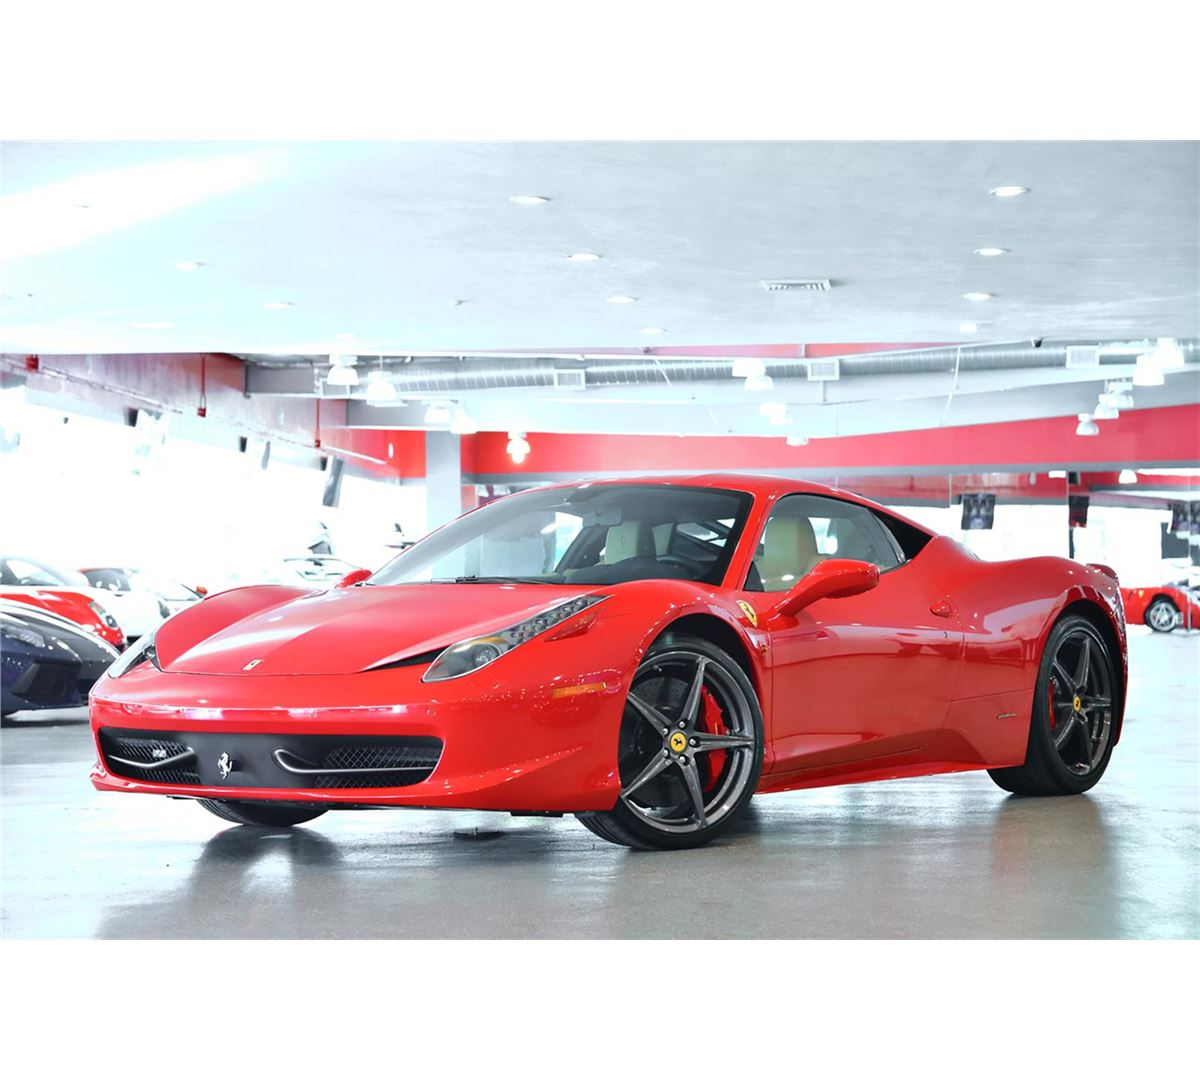 2010 Corsa Red Ferrari 458 Italia Coupe